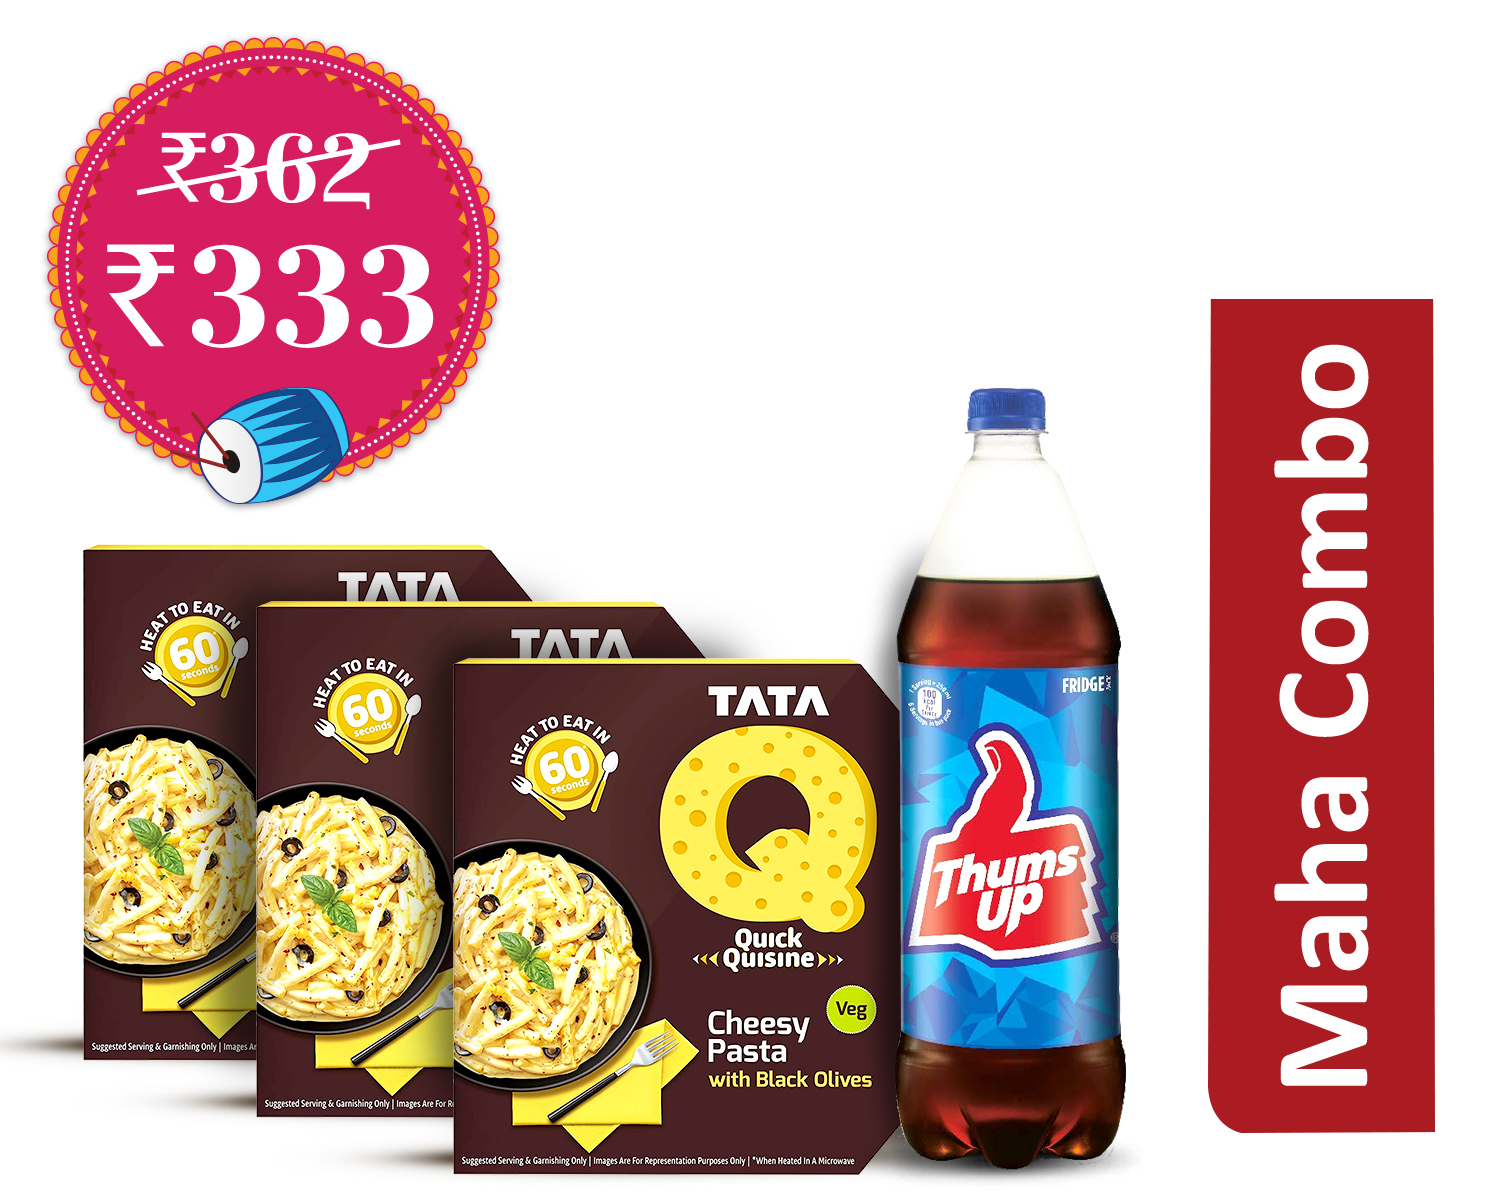 Easy-Cheesy Pack (1Unit) : Tata Q Cheesy Pasta With Black Olives * 3 + Thums Up 1.25Ltr